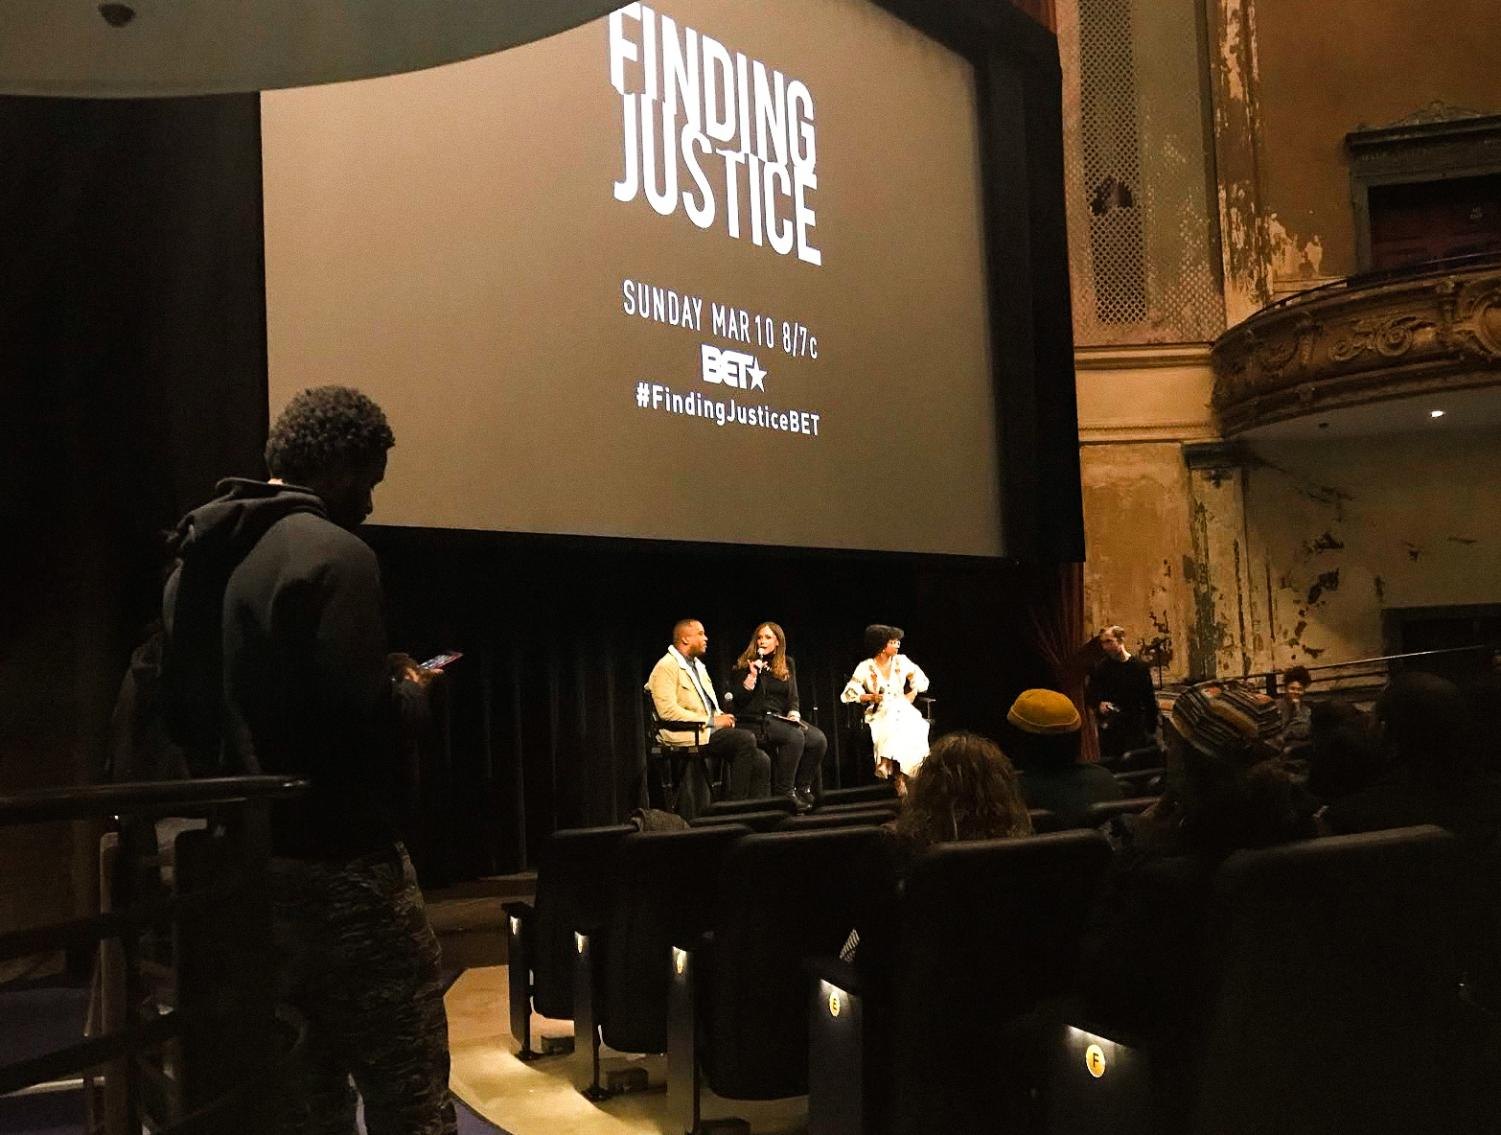 Screening of Finding Justice, photo by Iyanna Harris